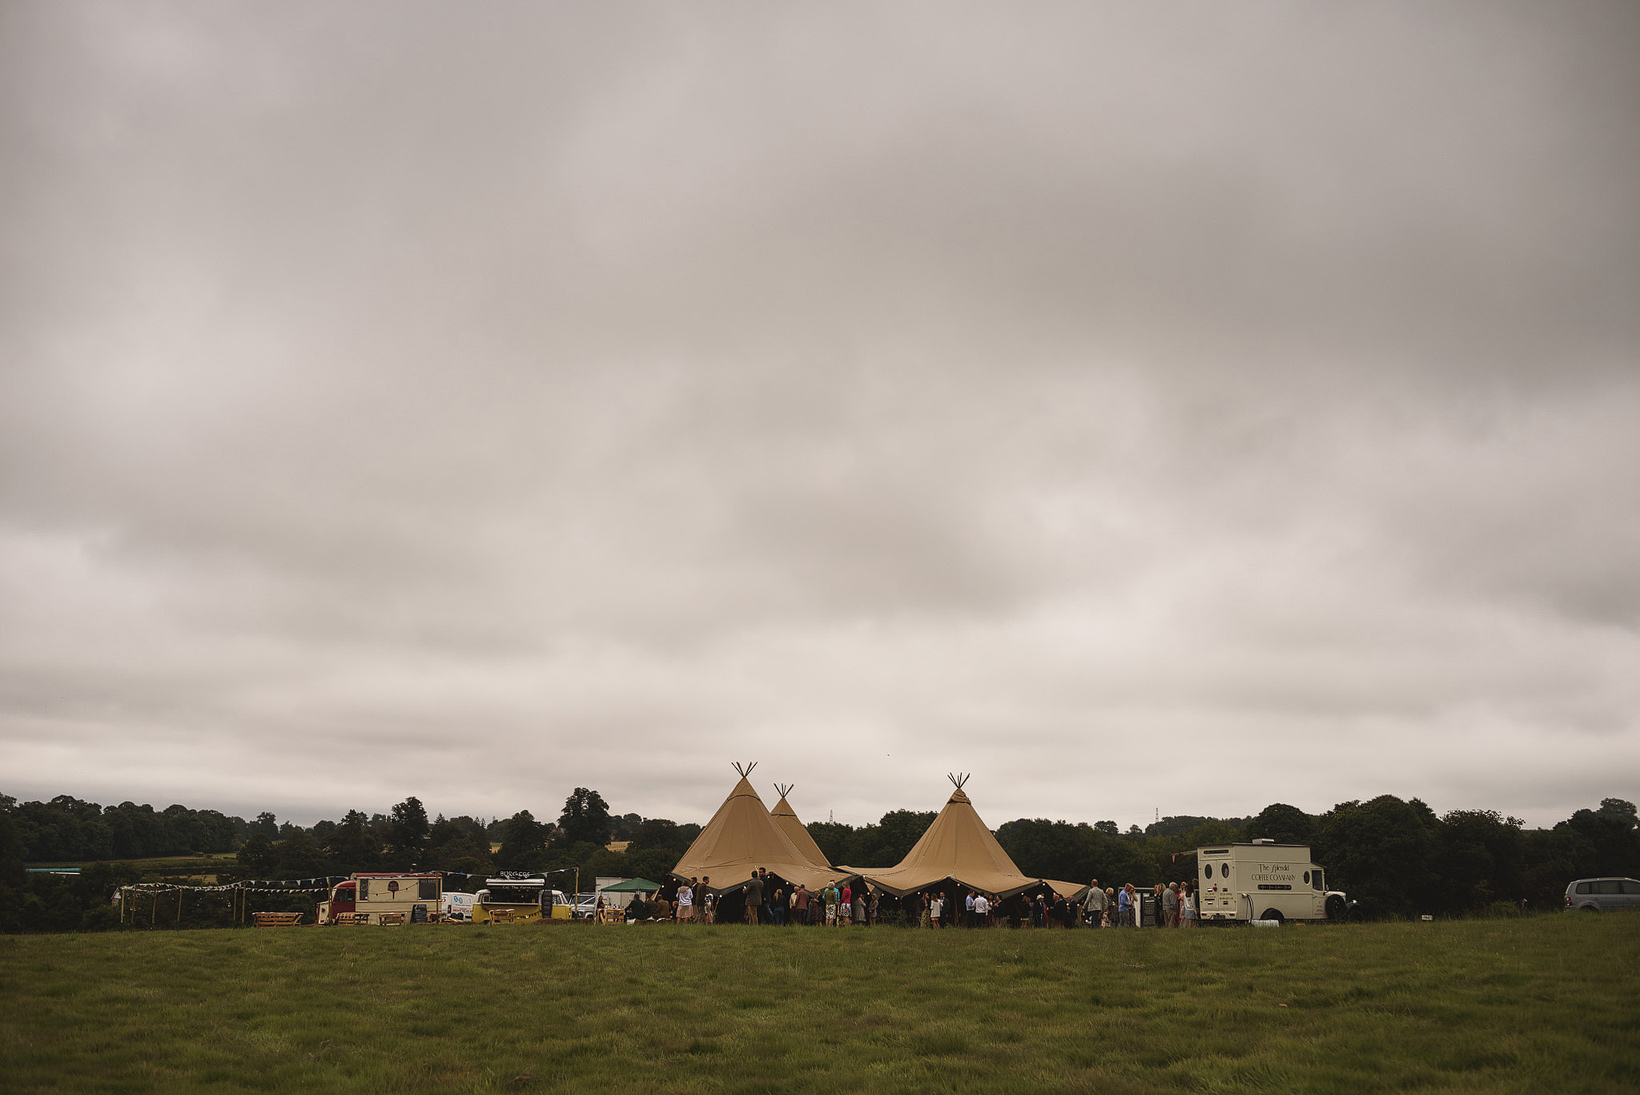 Holmstead Events Tipis